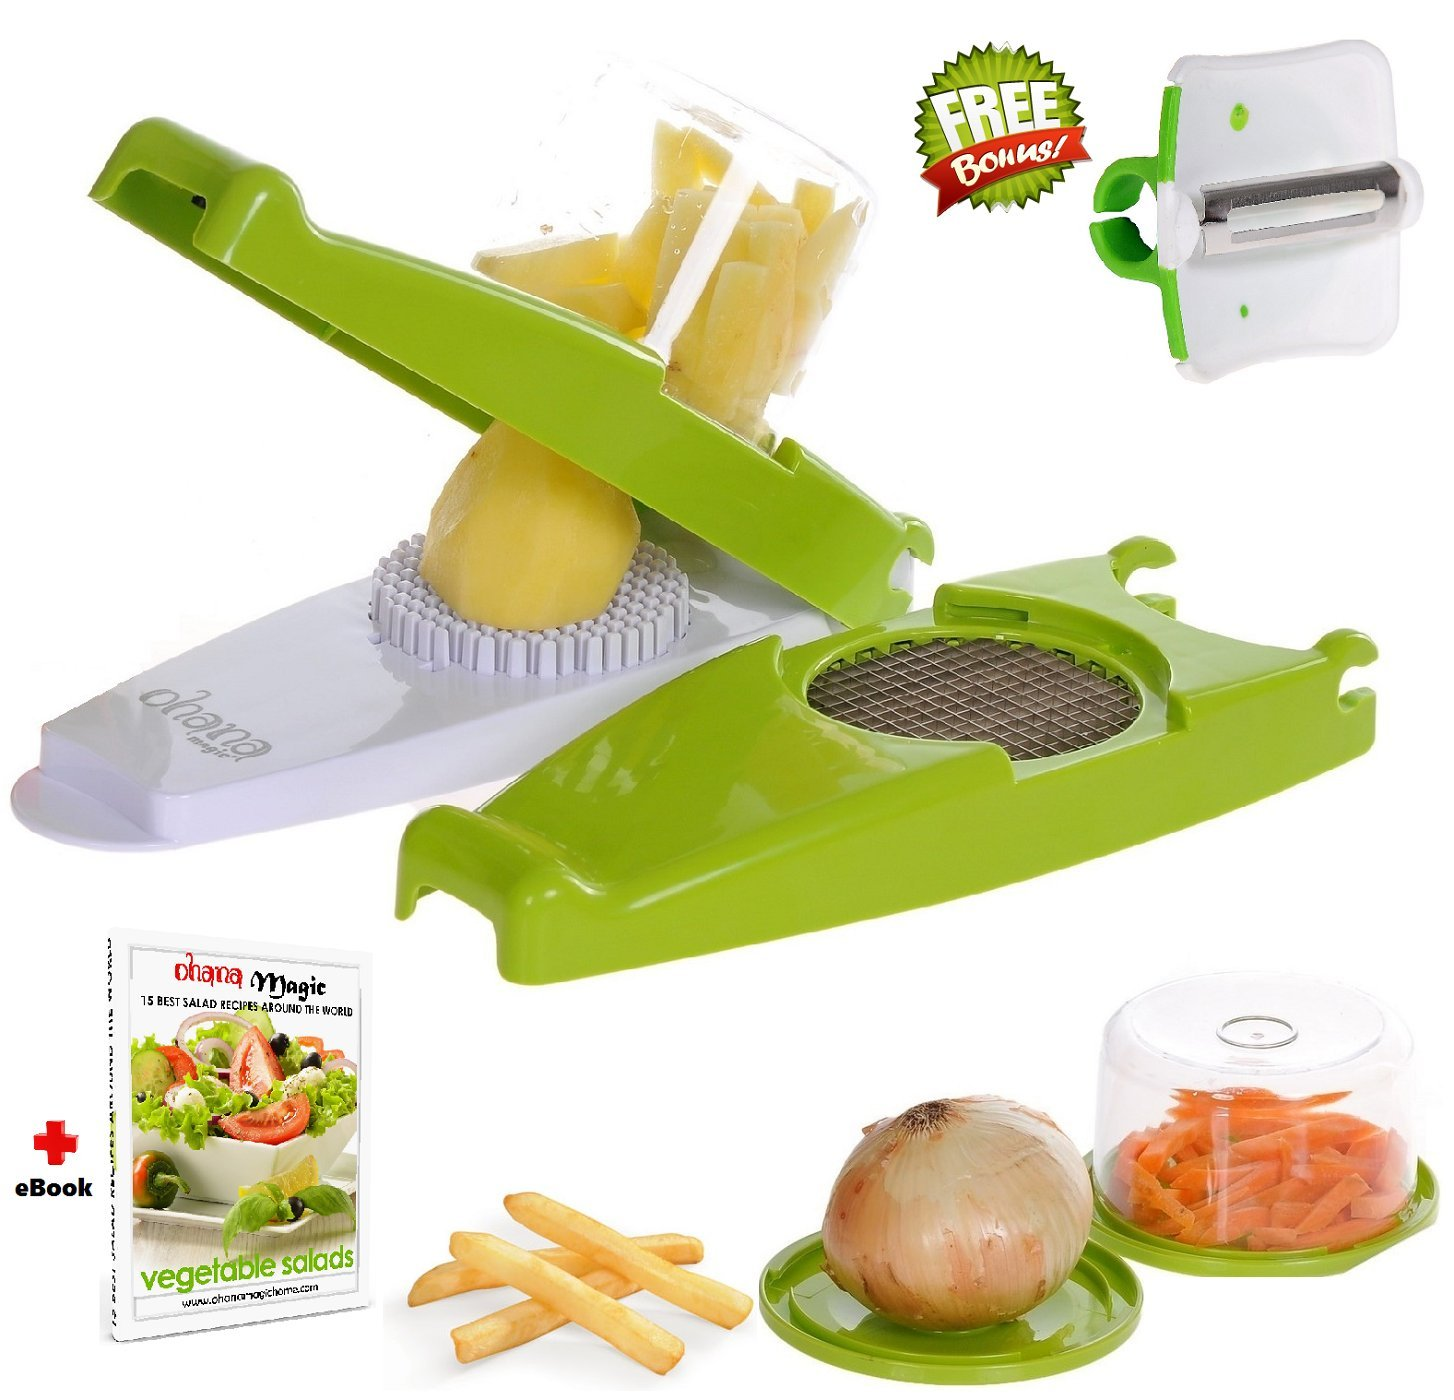 Ohana Magic French Fry Cutter Chopper for Vegetable Onion Food Fruit Dicer Potato Apple Slicer, 2 Storage Container, FREE Peeler & Recipe e-Book